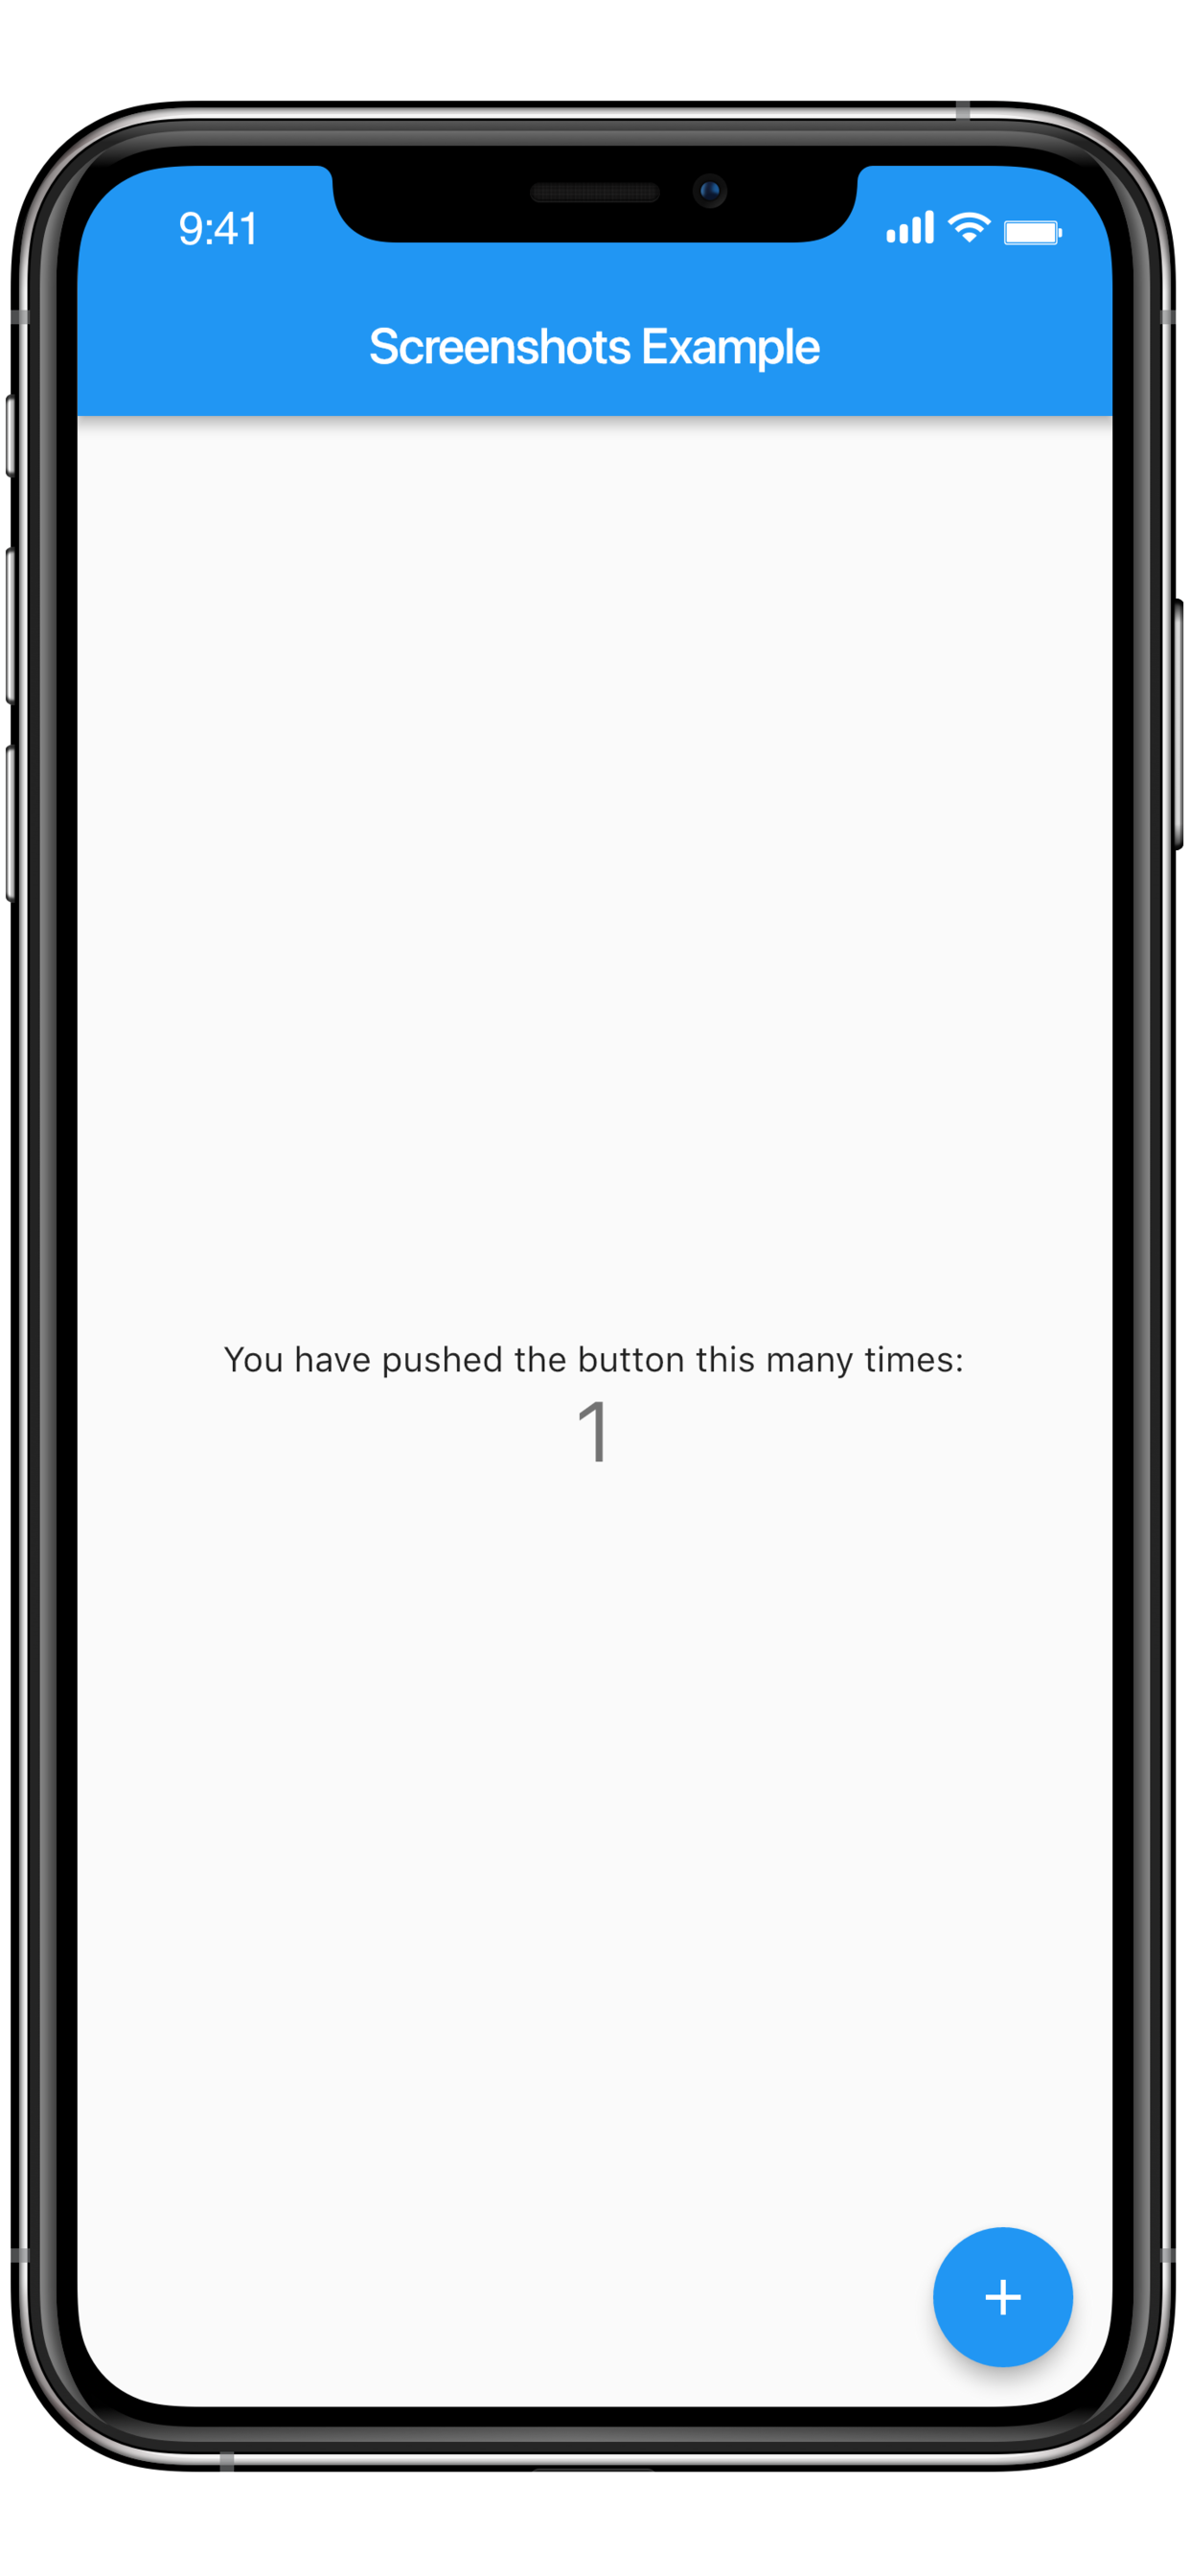 Support iPhone XS Max and 12 9-inch iPad Pro (3rd generation